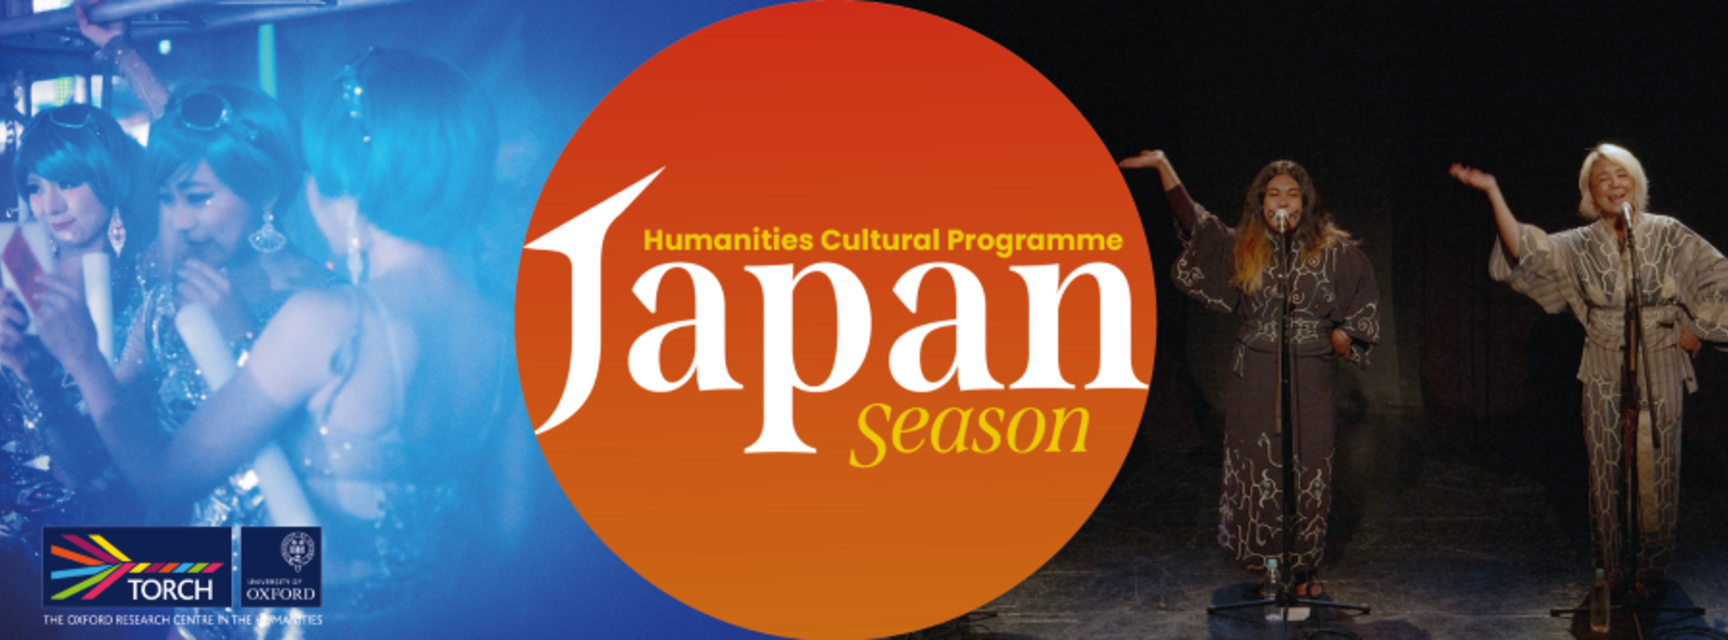 In the centre is an orange circle reading 'Japan season, Humanities Cultural Programme'. On the left is a blue tinted photo of three Japanese women in costume, and on the right is a photo of two Japanese women on stage singing.